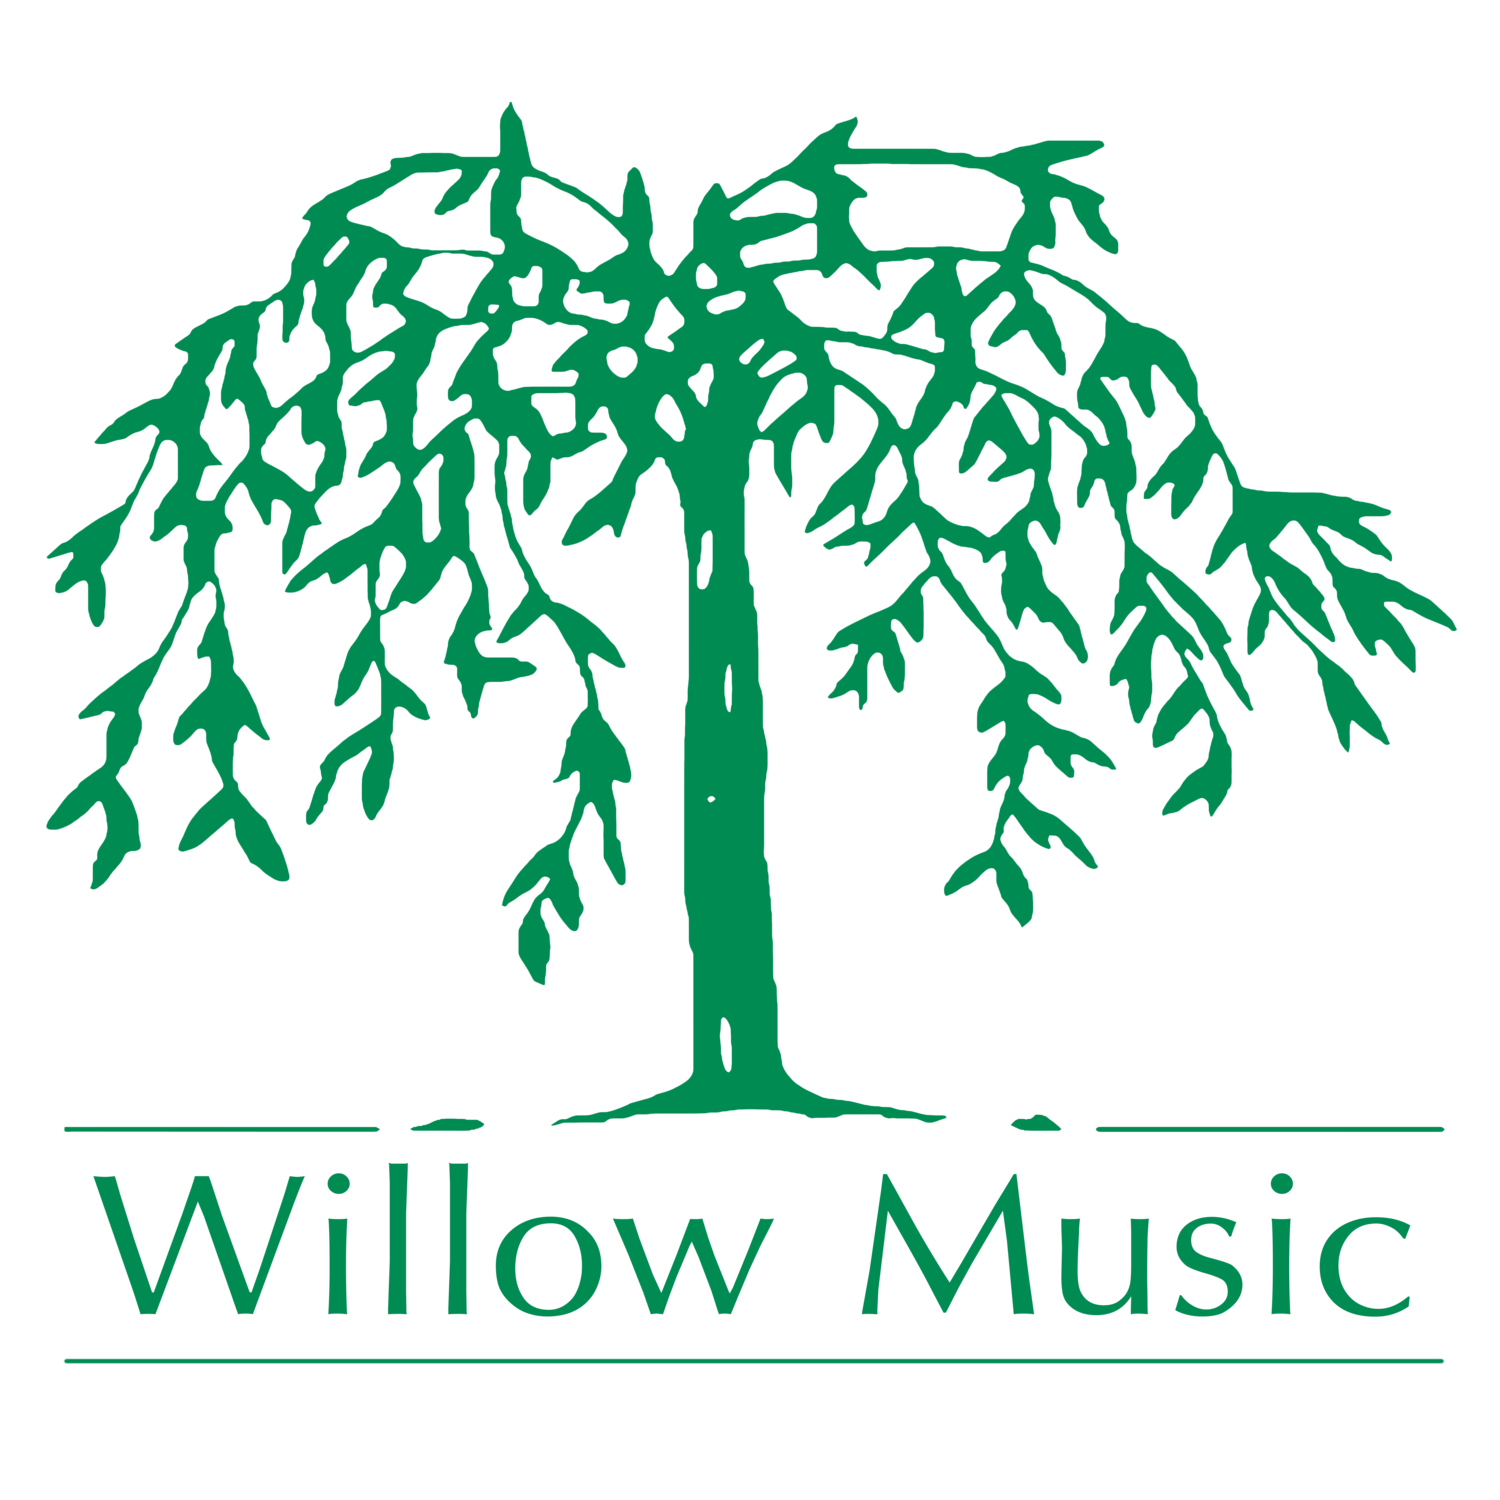 Willow Music